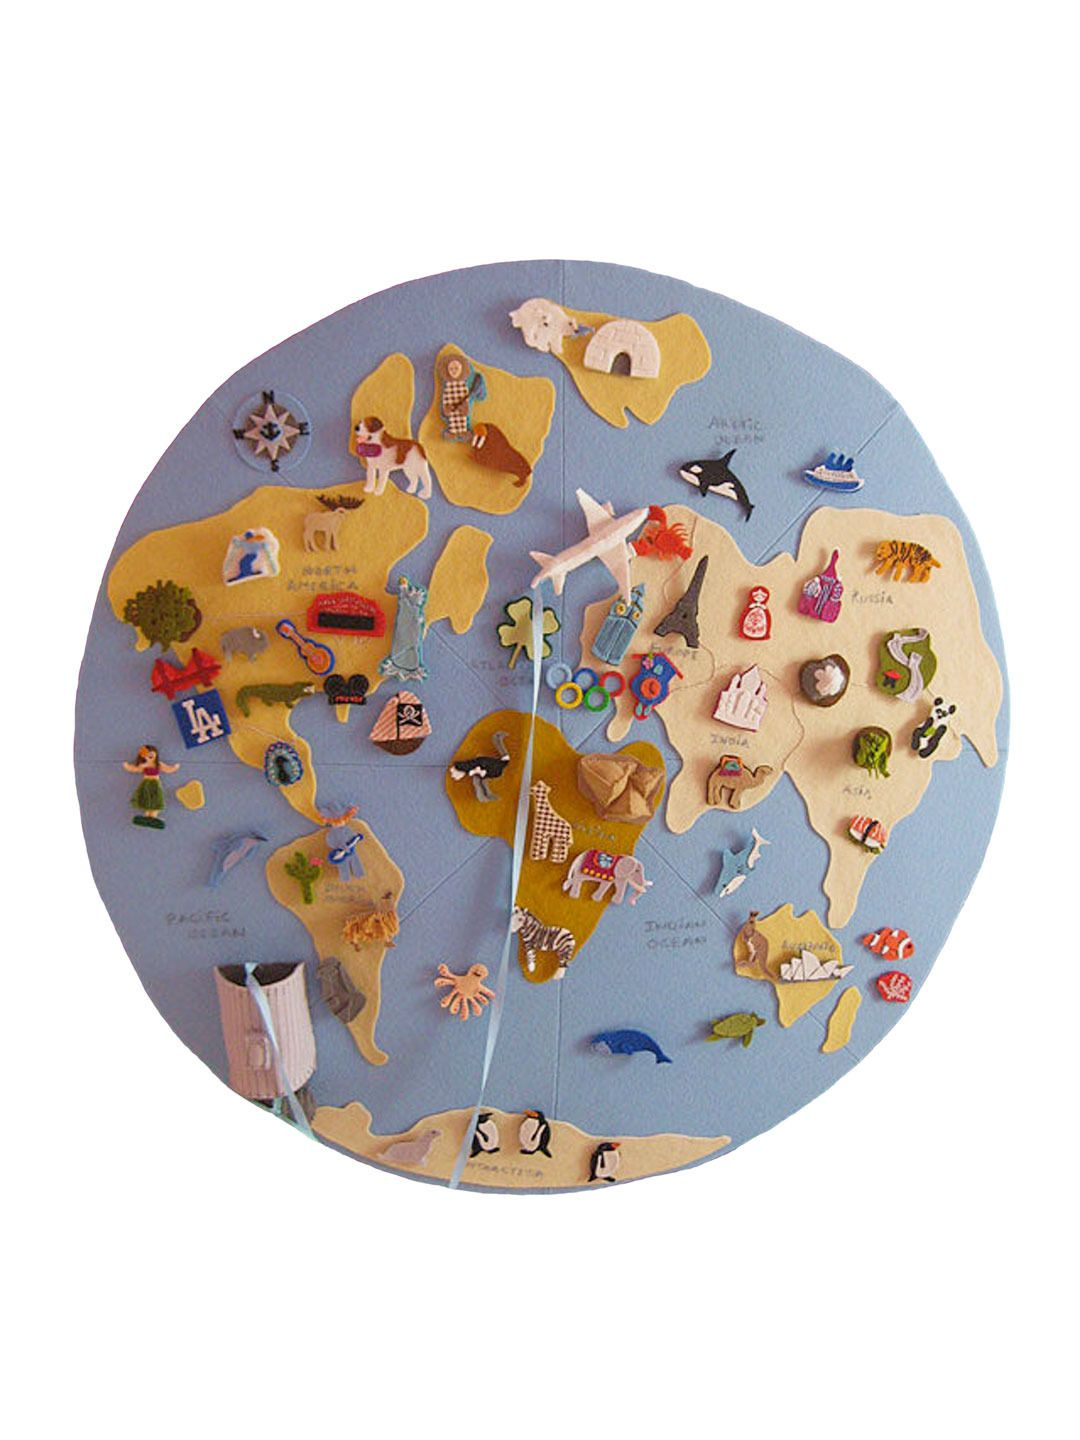 Felt globe movable pieces jen talbot playroom pinterest world missions diy felt globe check this link also for ideas on neighborhood maps us missions and other cute travel craft ideas gumiabroncs Images